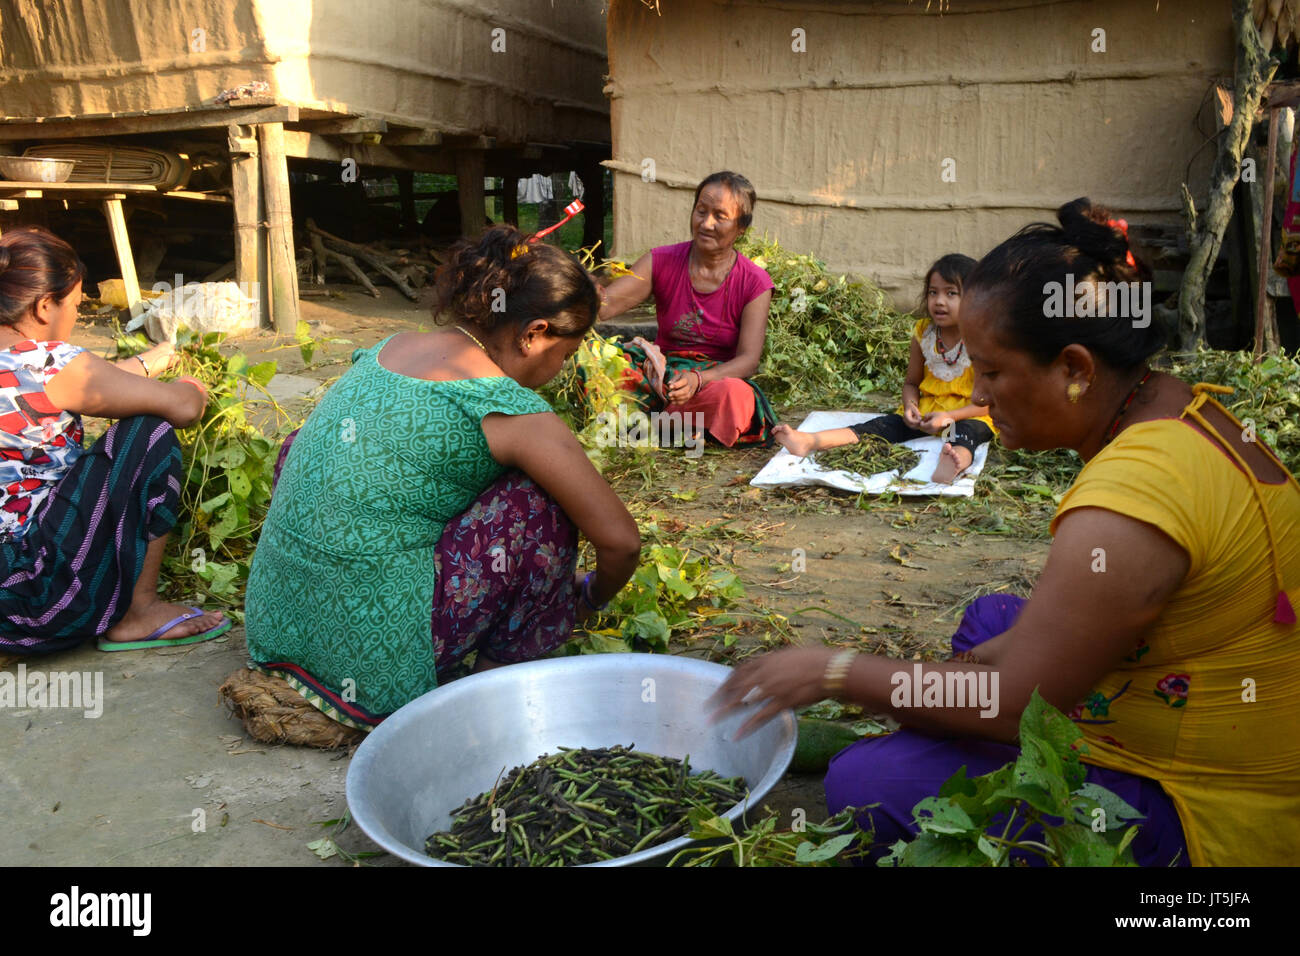 Food being prepared by villagers living within Chitwan National Park, Nepal - Stock Image